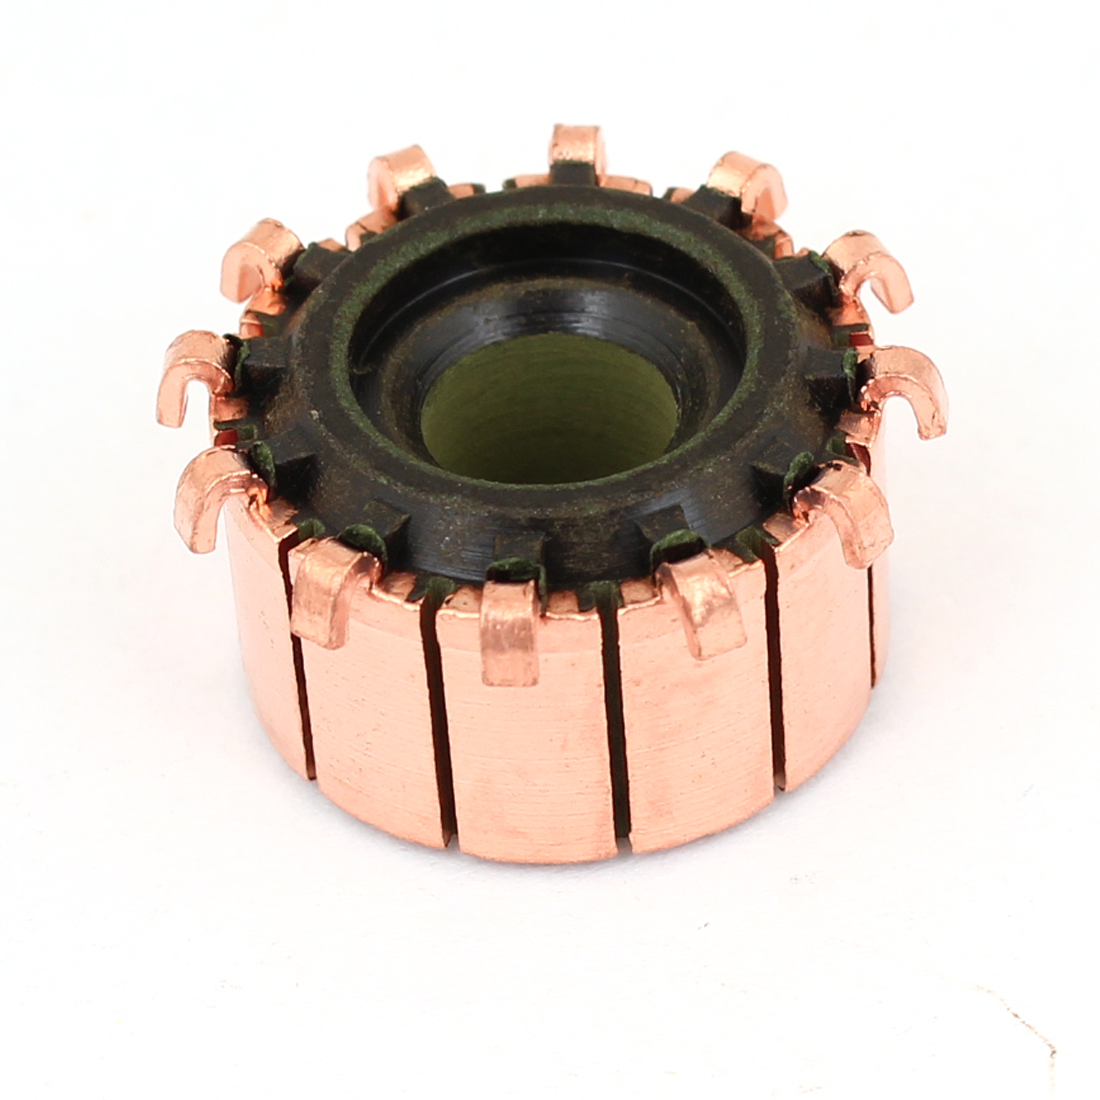 18.9mm OD 11.7mm Height 12 Tooth Copper Shell Mounted On Armature Commutator